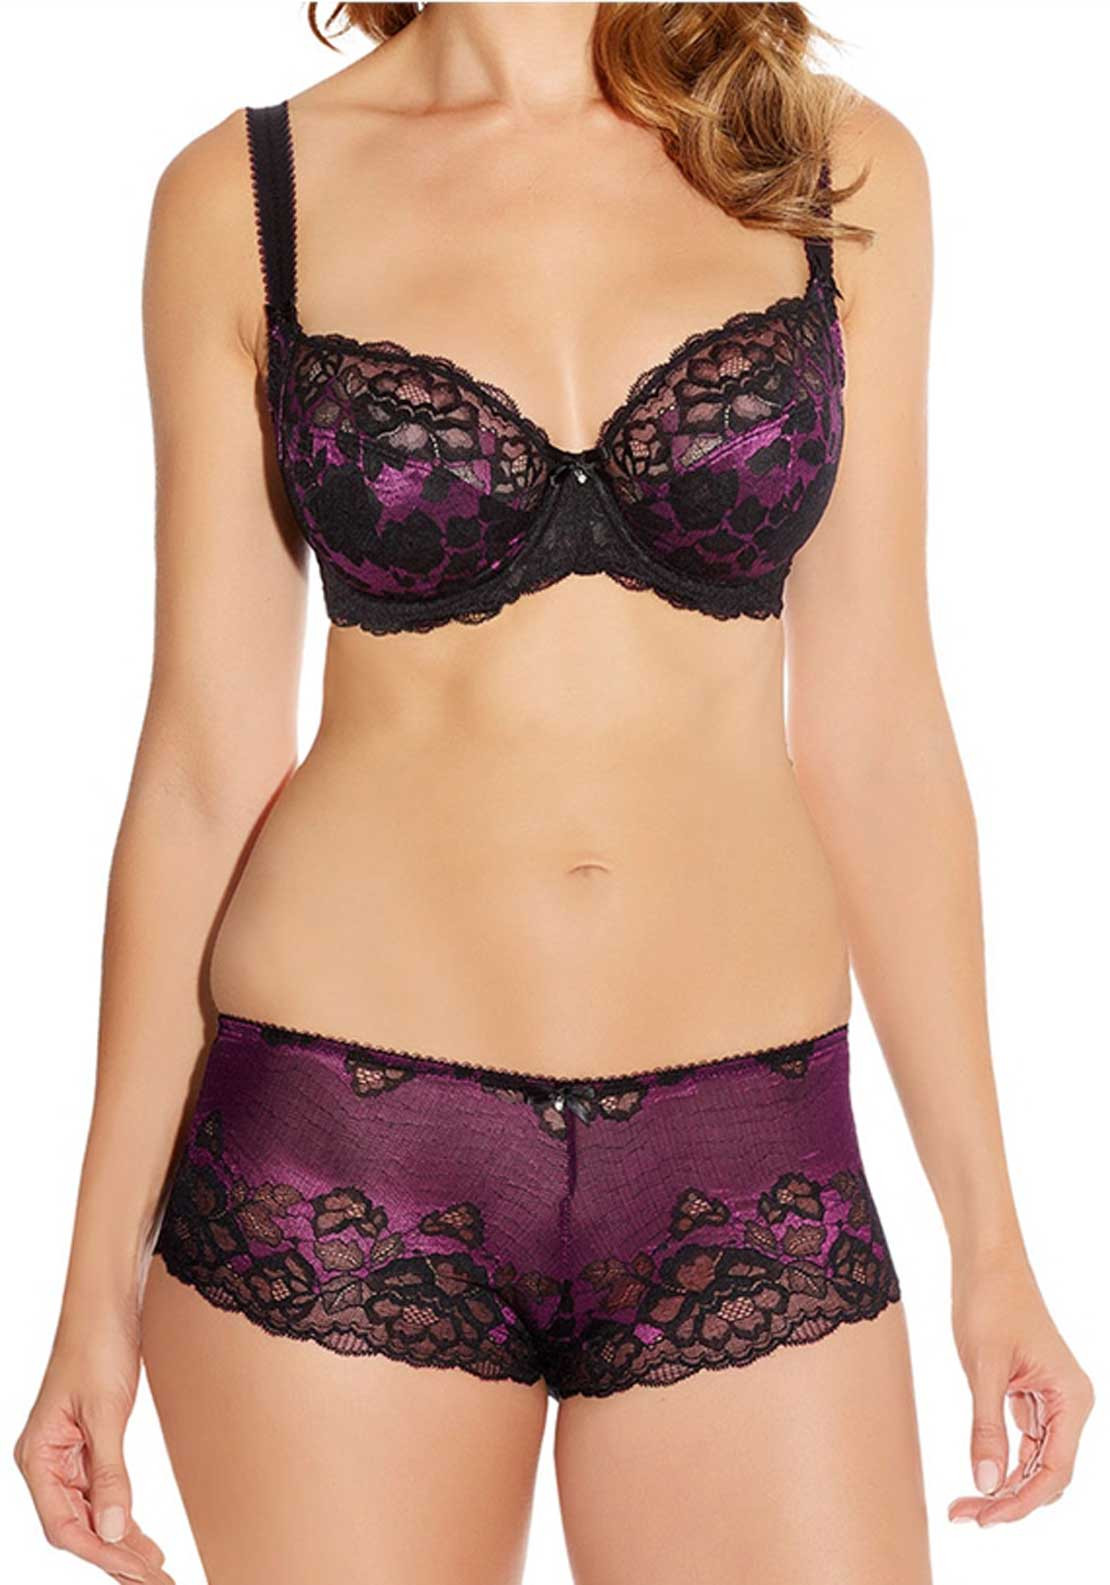 Fantasie Marianna Underwired Side Support Plunge Bra, Magenta and Black